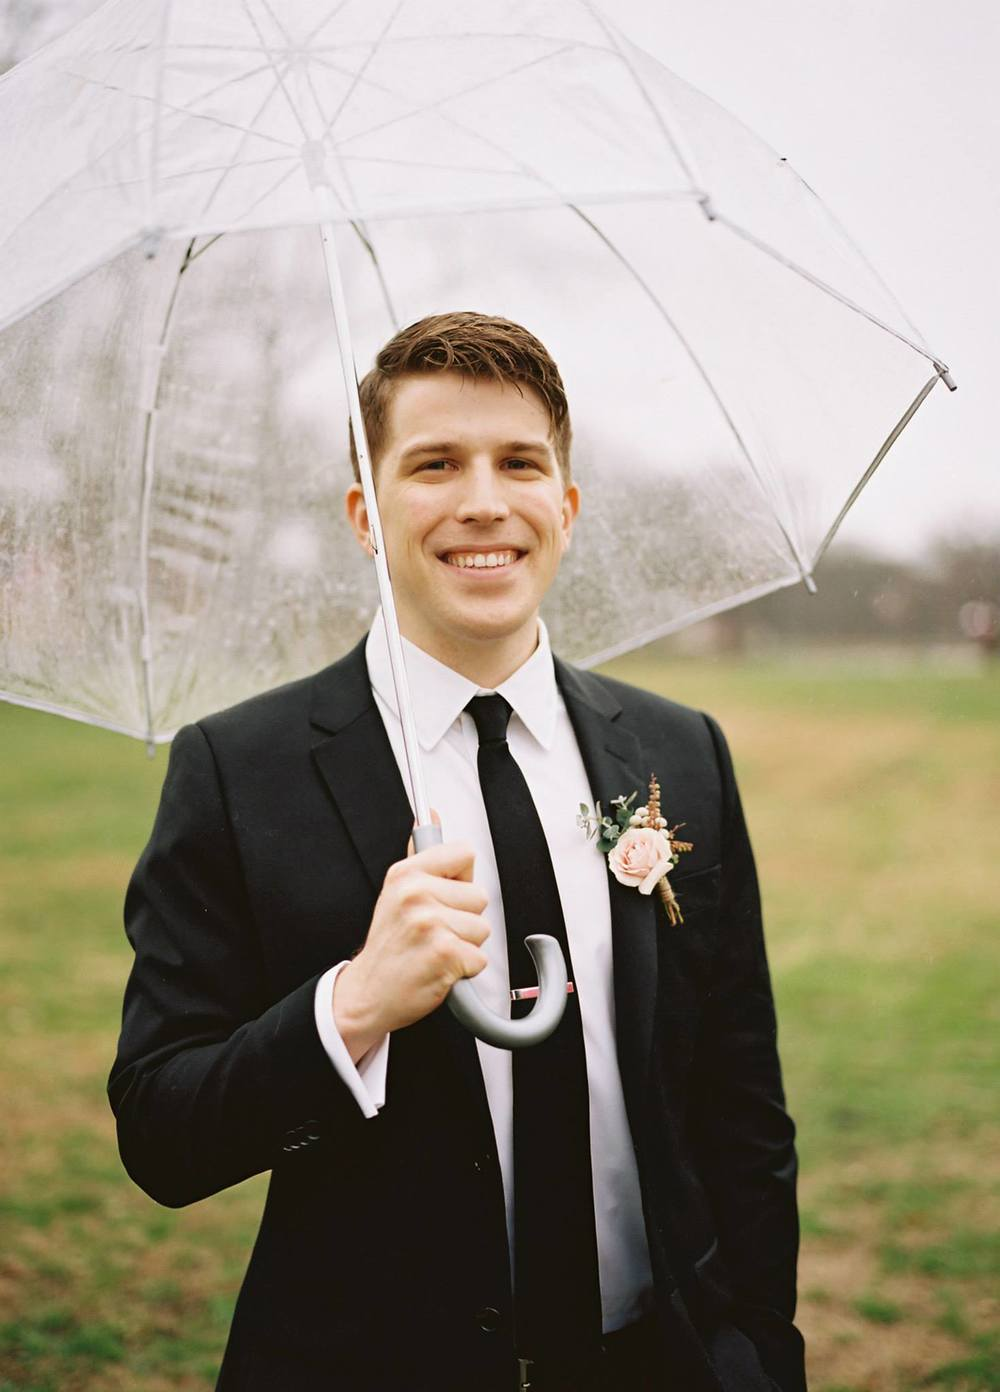 Rainy wedding day // Neutral groom boutonniere